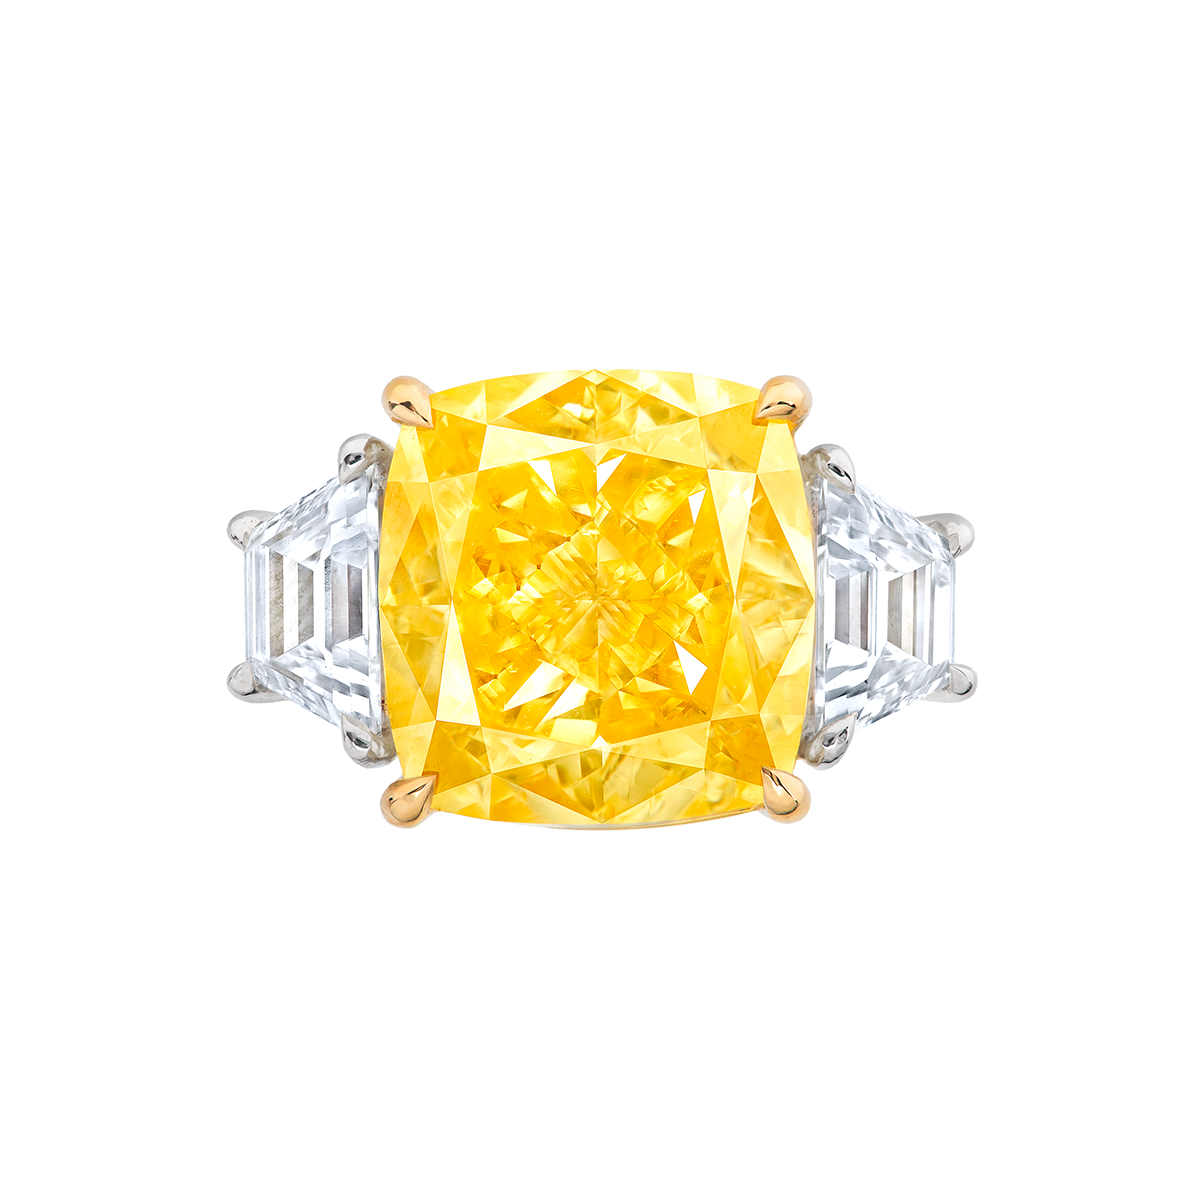 GIA 10.02克拉 濃彩黃鑽鑽戒